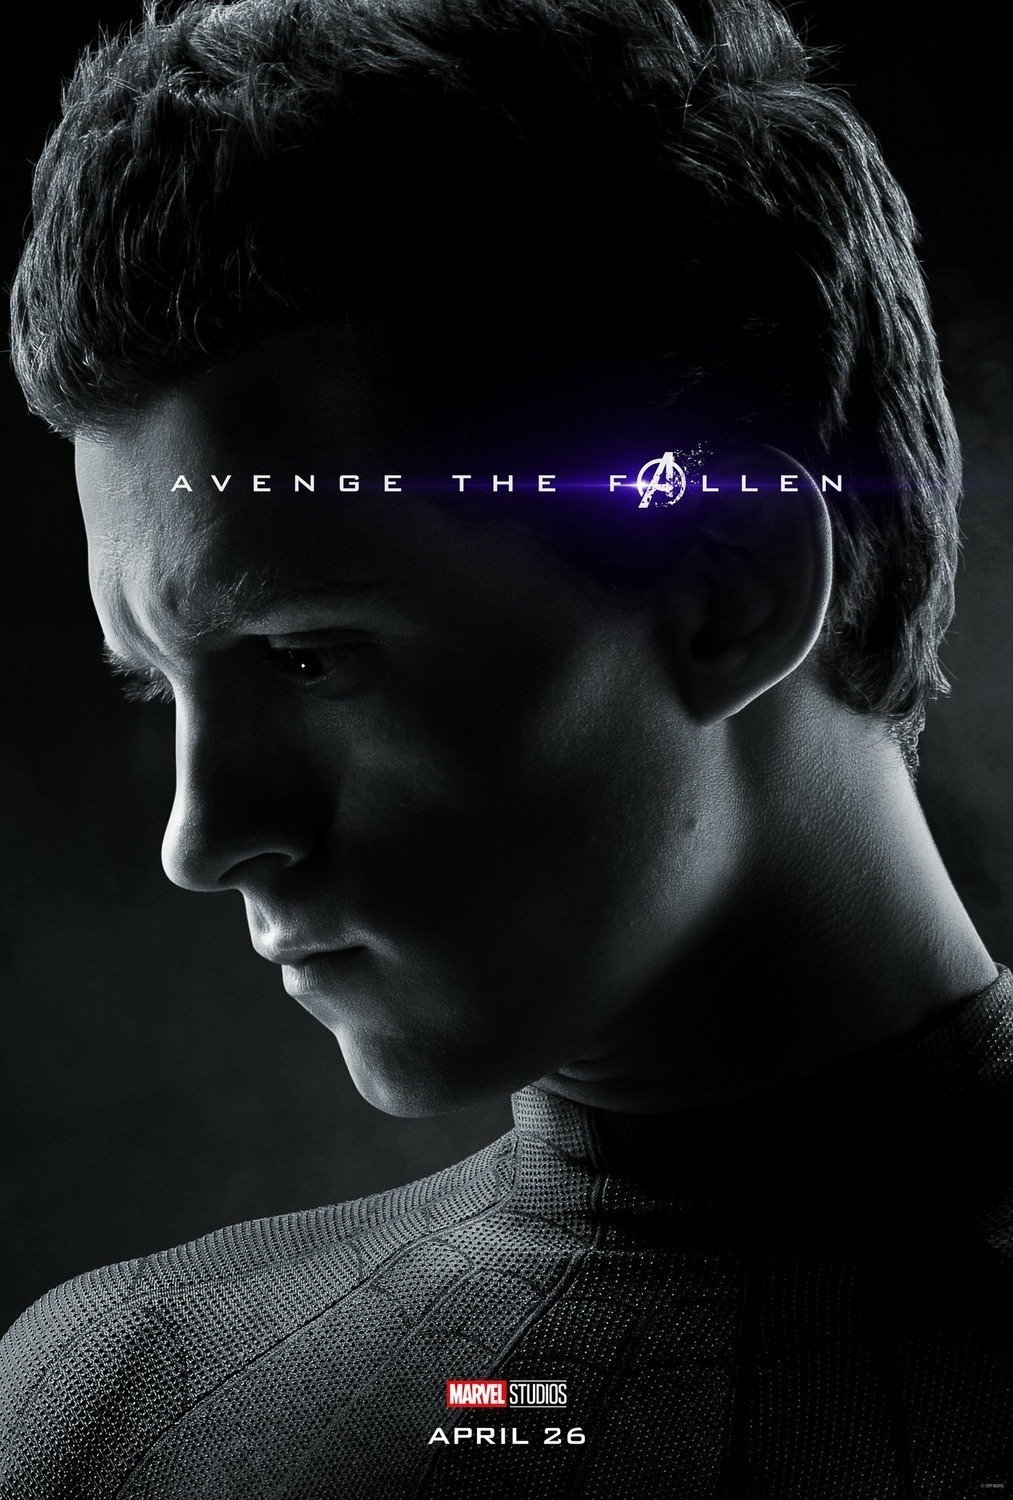 Poster du film Avengers: Endgame avec Spider-Man (Tom Holland)